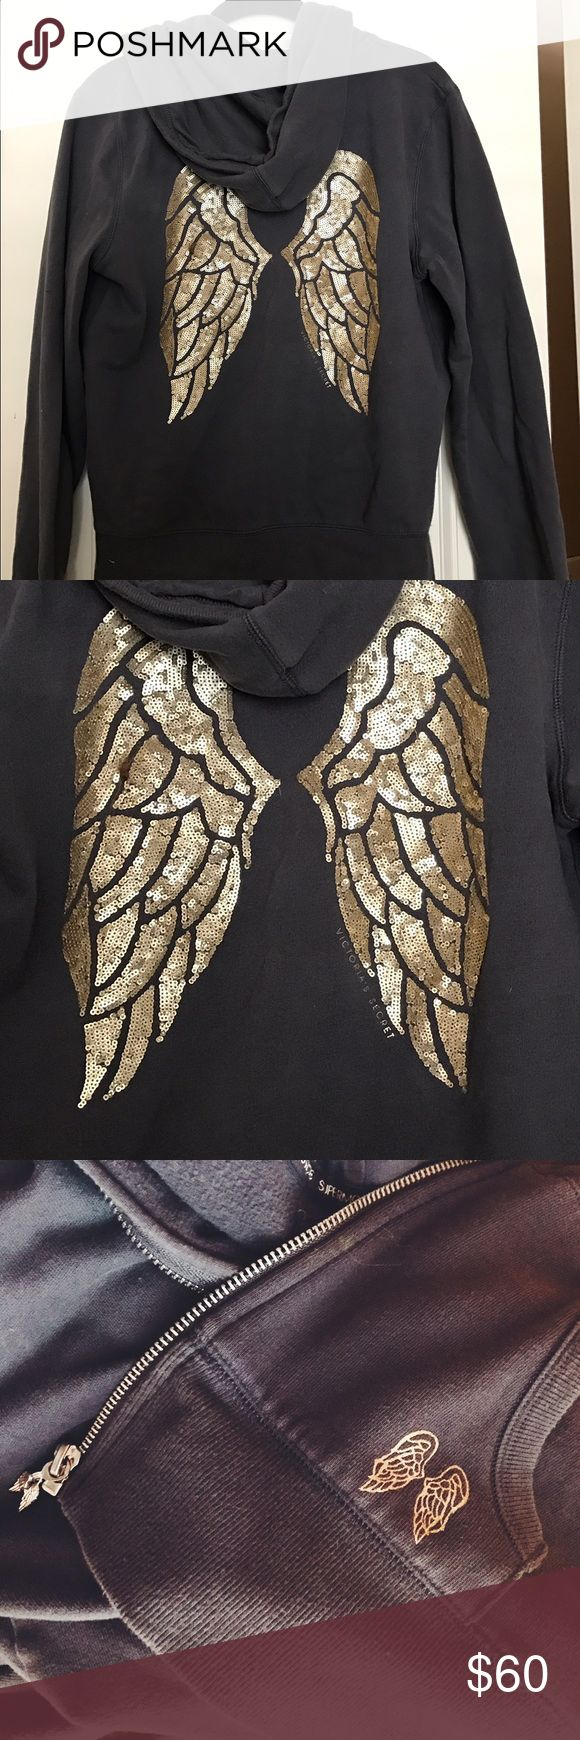 Victoria's Secret Wings Hoodie Gold sequin wings on the back. Zips all the way down in the front. Size medium. Victoria's Secret Tops Sweatshirts & Hoodies